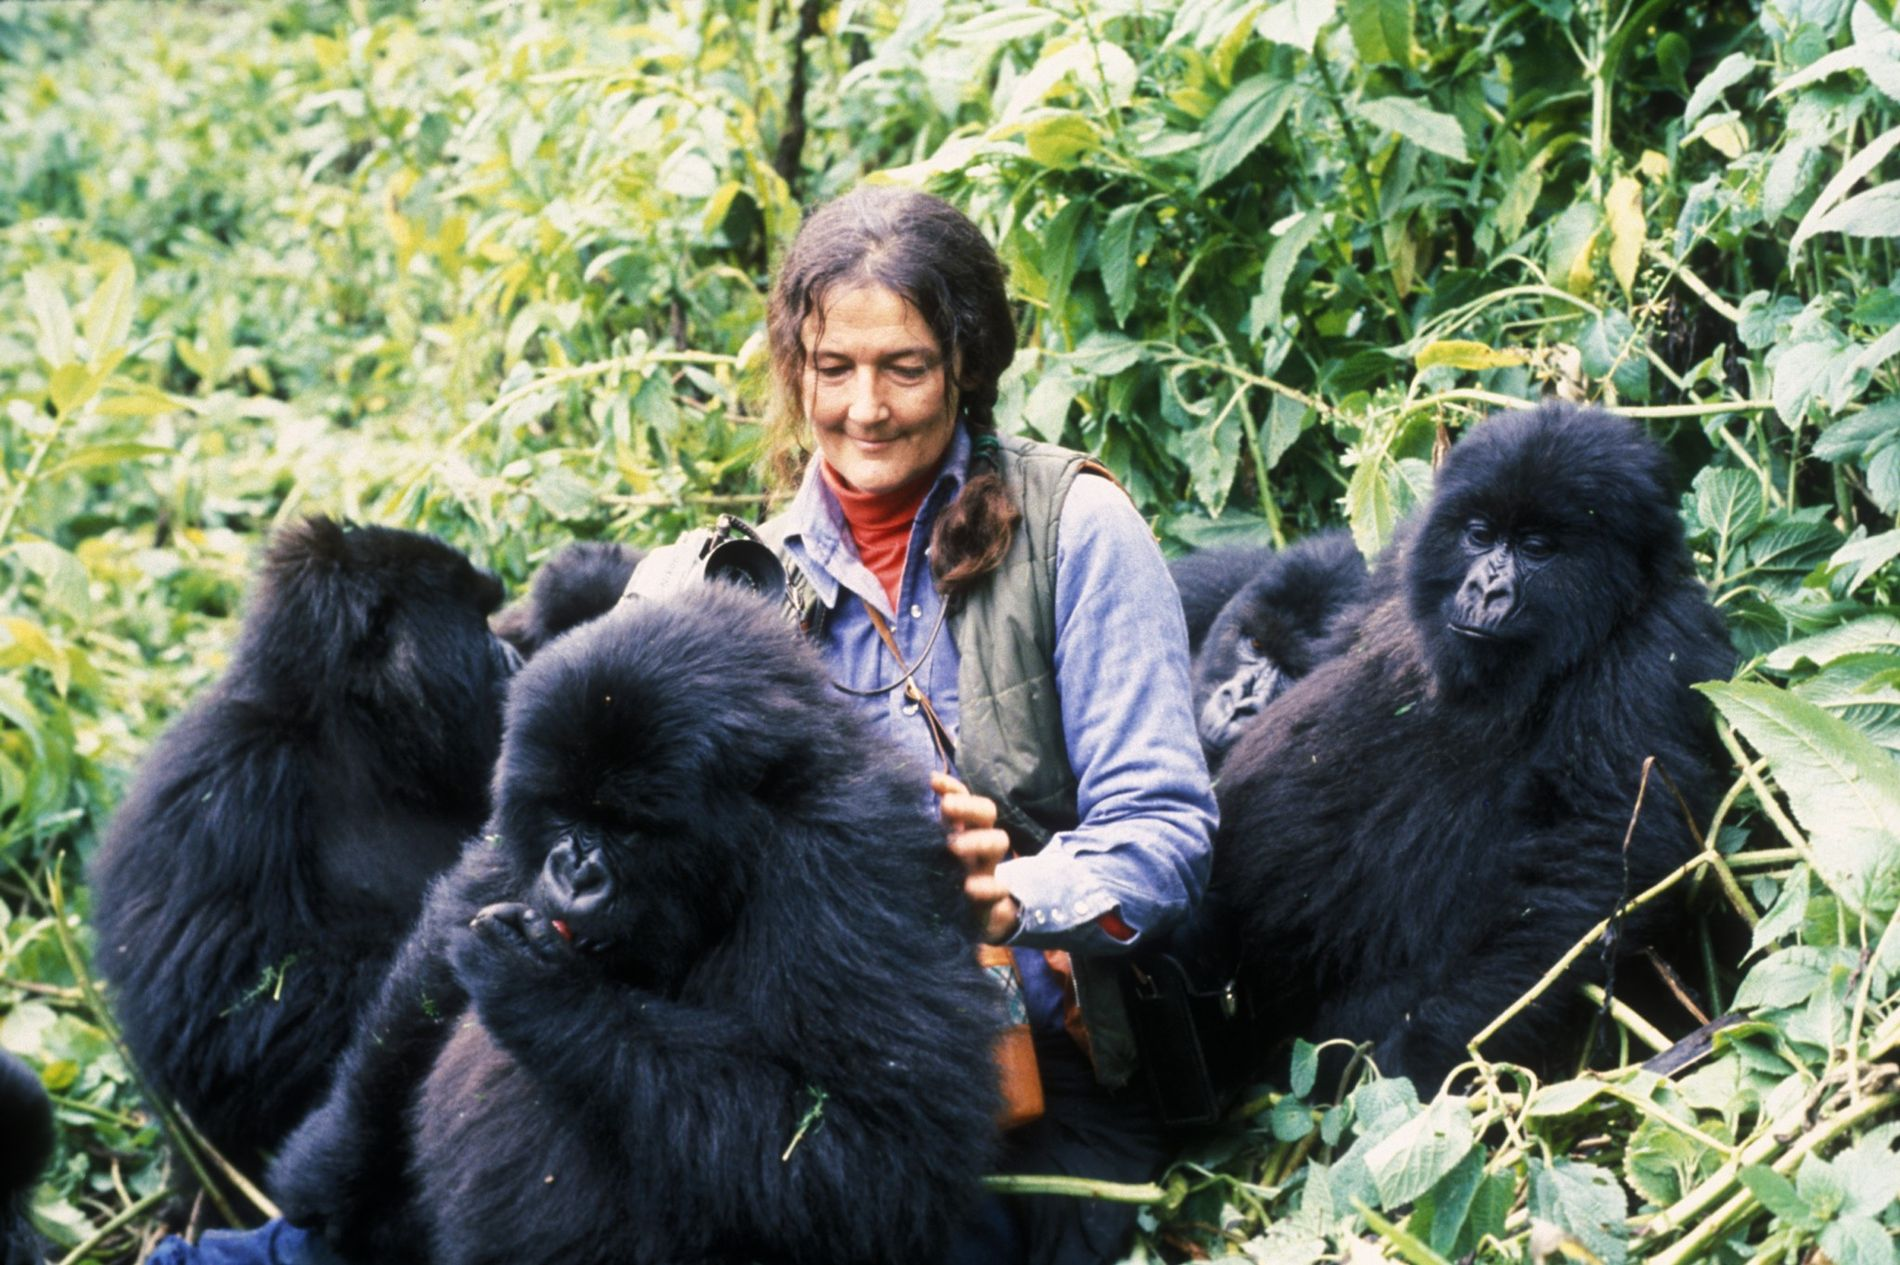 Accepted without question by young members of Group 5, one of several families living near Karisoke Research Centre on Rwanda's lush Mount Visoke, Dian Fossey coaxes Tuck to turn around for a photograph. She informs the group of her approach with a belch vocalization, one of Gorilla gorilla beringei's signals ranging from harsh pig grunts of disapproval to sharp hoot barks of alarm. To put them at ease, she also imitates chest beating, eating, scratching, and grooming. She can then observe their natural feeding habits, track their movements, and listen in on their bickering and play.